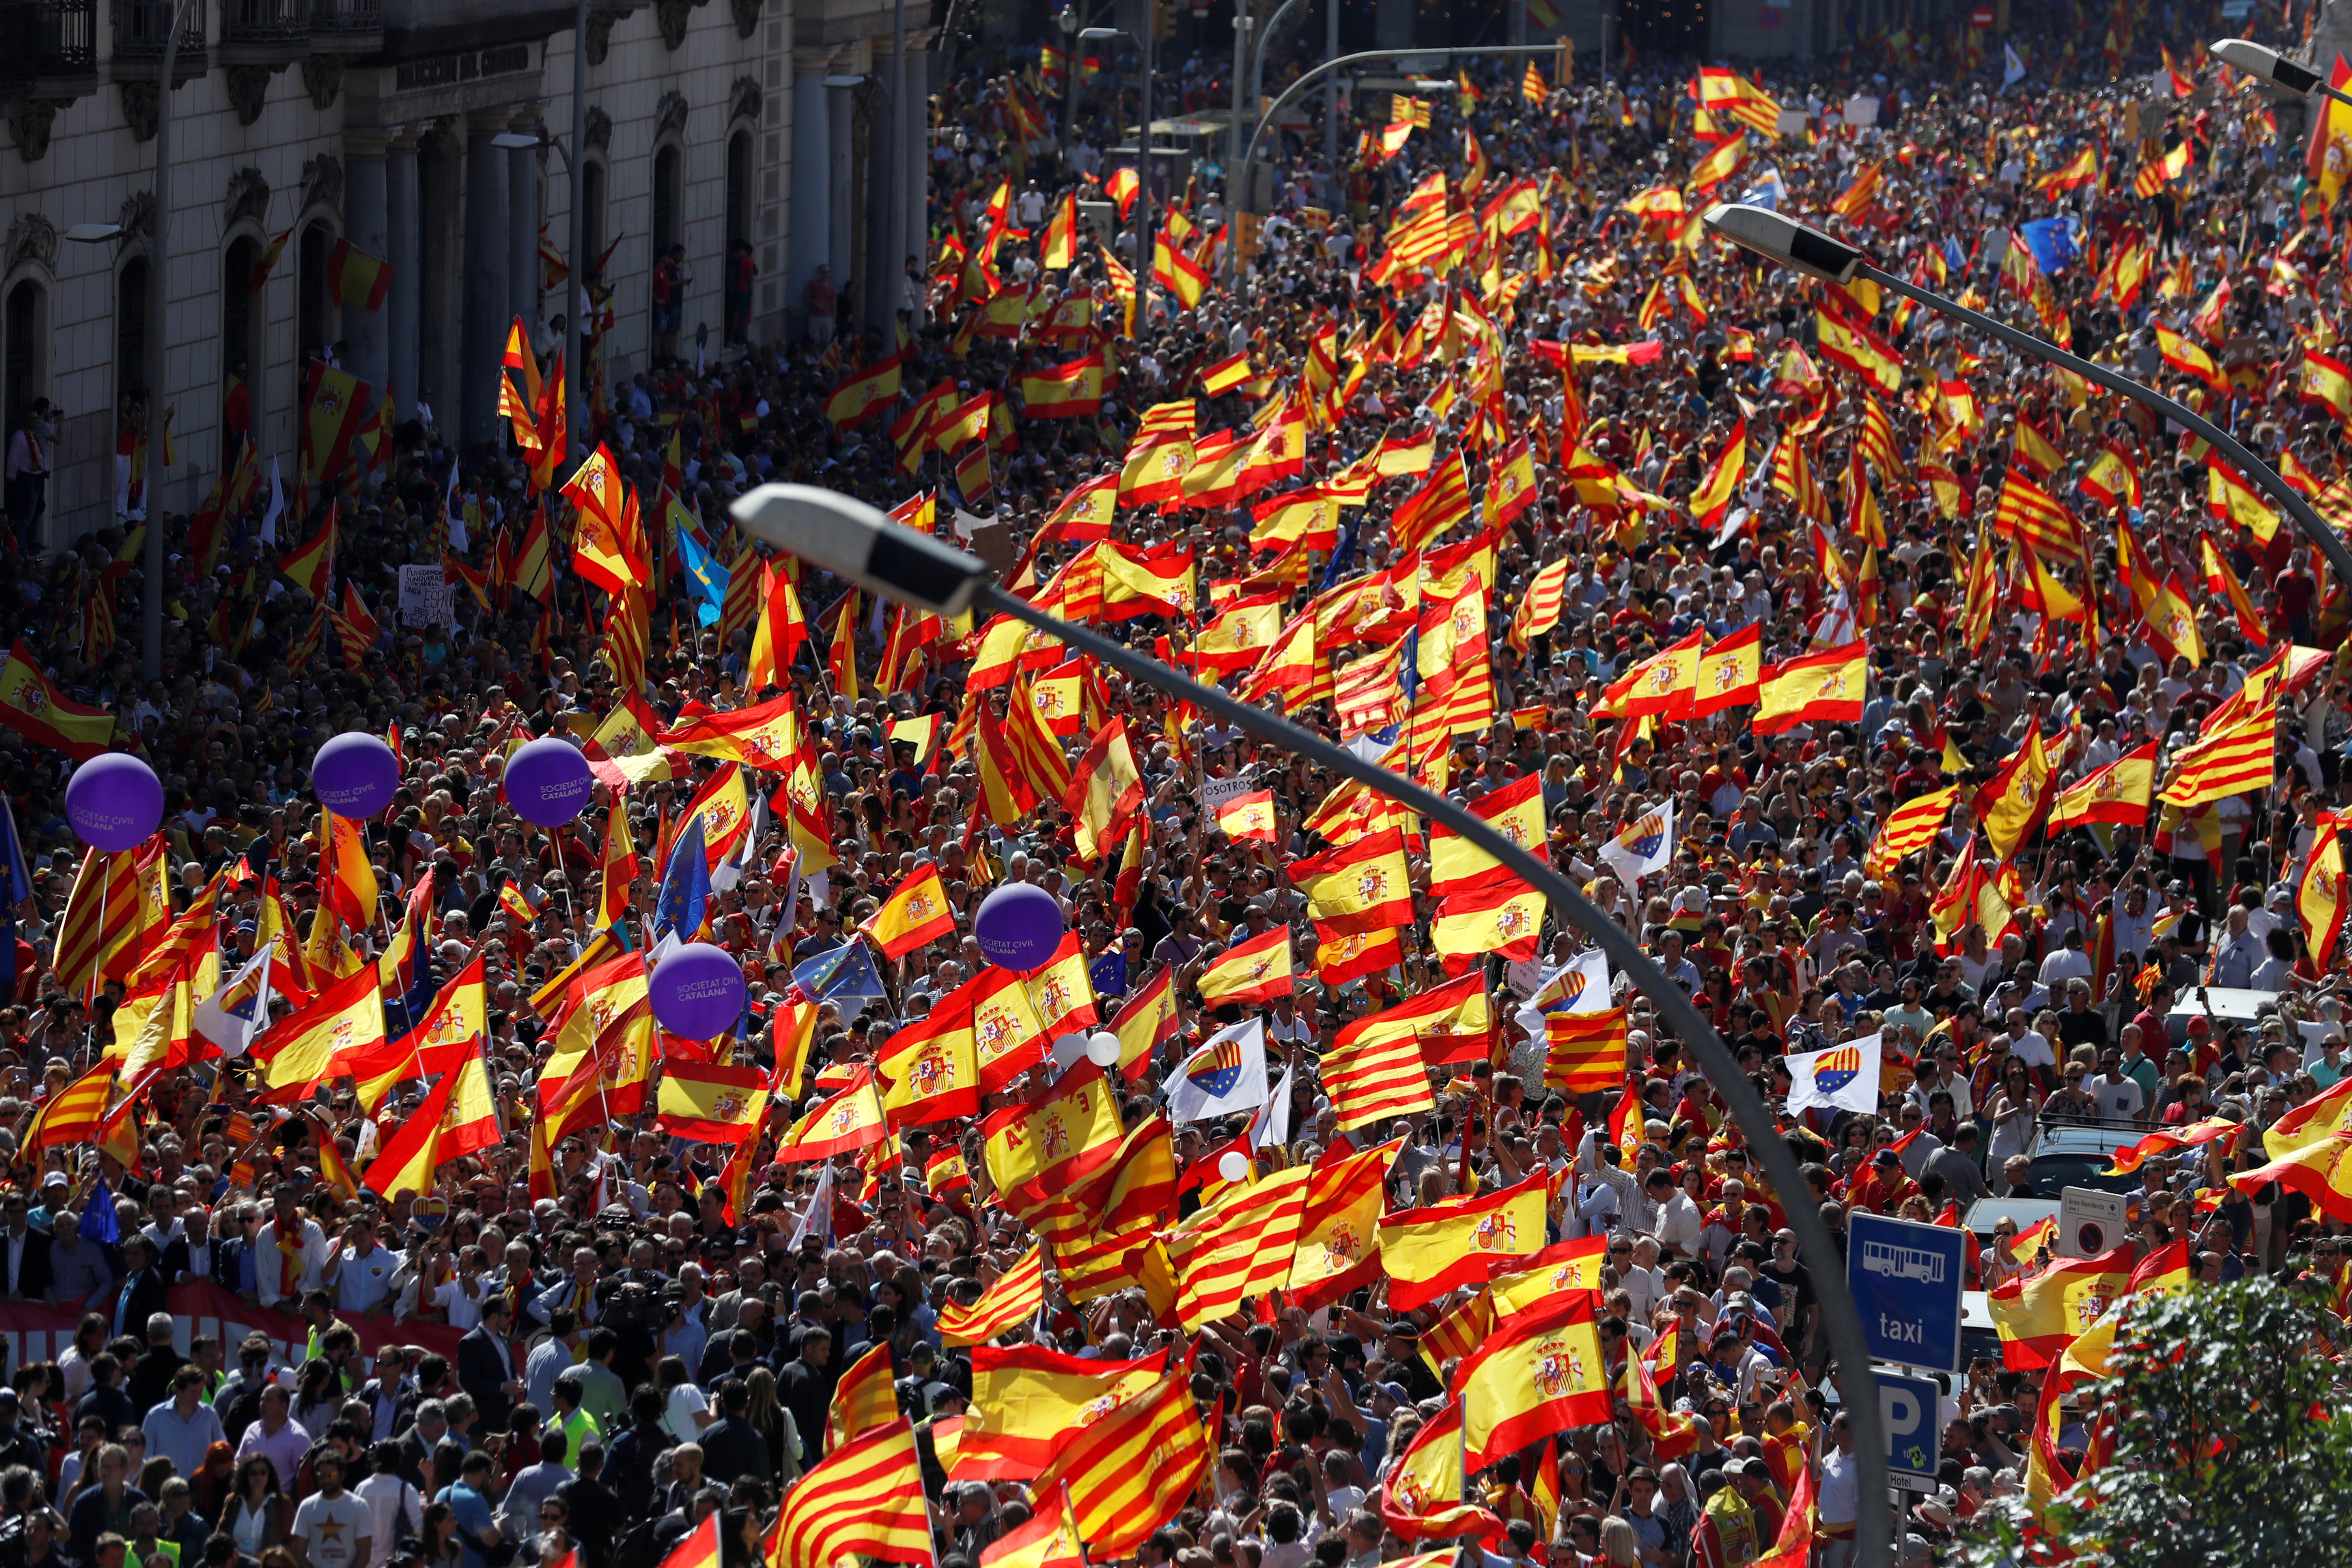 A pro-union demonstration organised by the Catalan Civil Society organisation makes its way through the streets of Barcelona, Spain October 8, 2017.